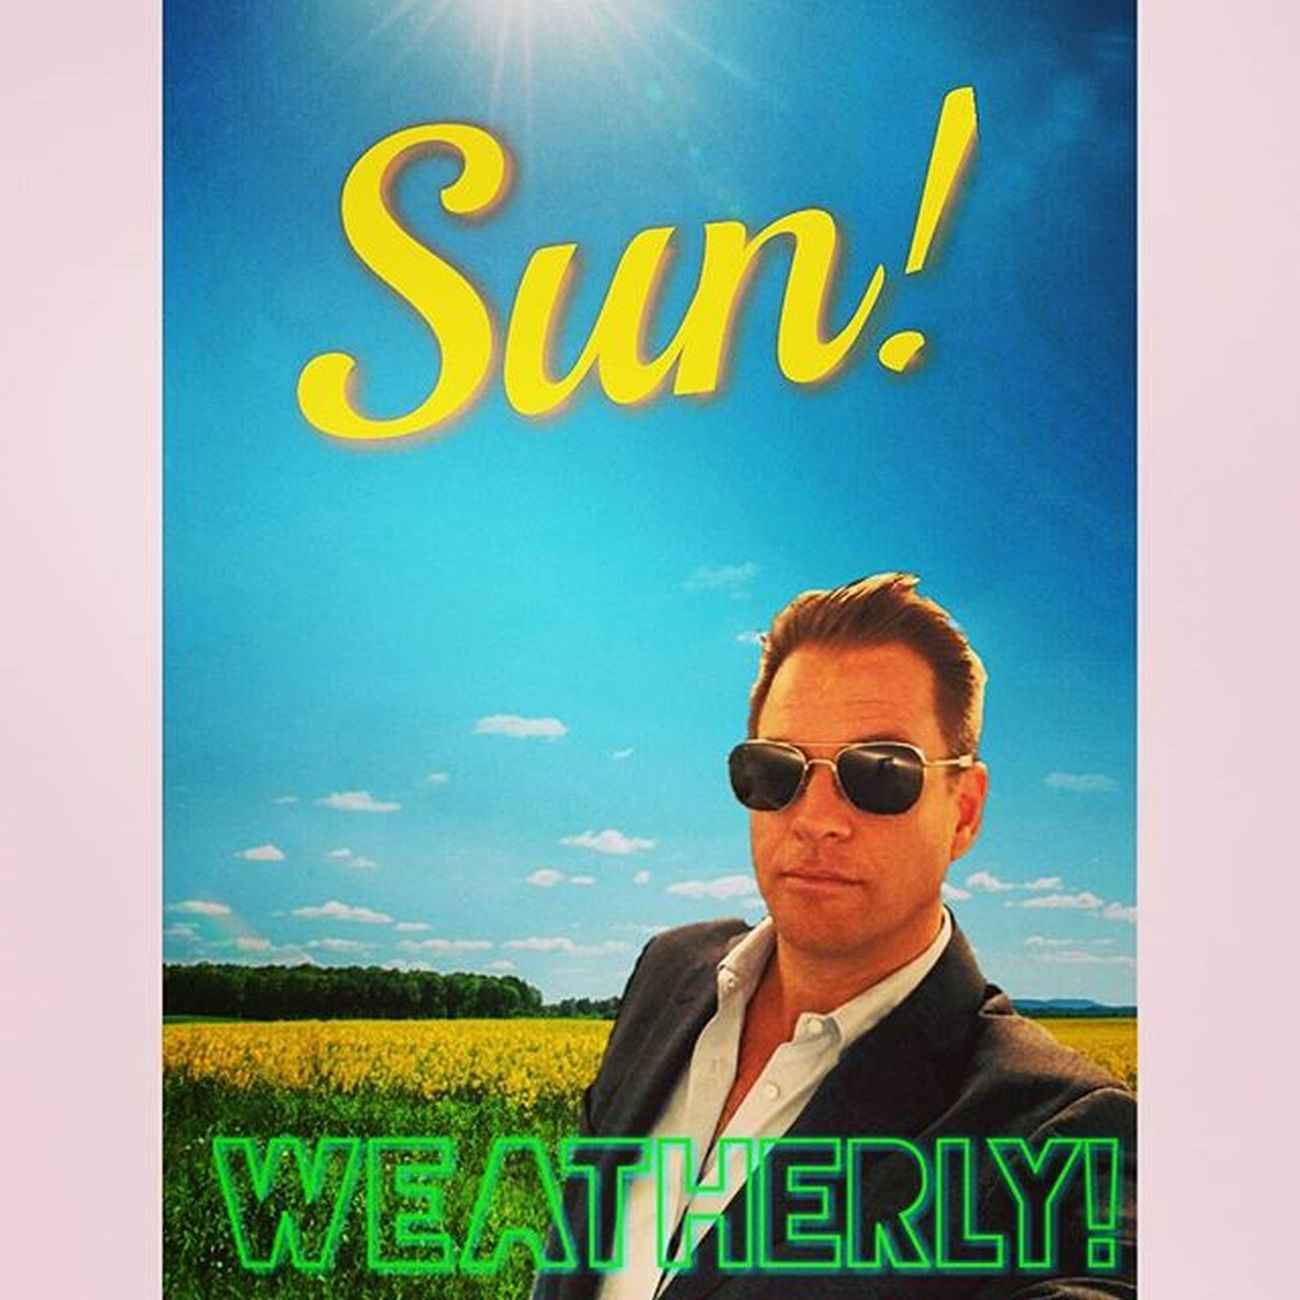 One of his best Song ever 😍😍@michaelmweatherly Love This Song So Much Awesome Singer  Awesome Actor Ncis Michael Manning Weatherly Mmw AnthonyDiNozzo Special Agent Tony Dinozzo Navalcriminalinvestigativeservice NavyCIS [give credit if you taken]